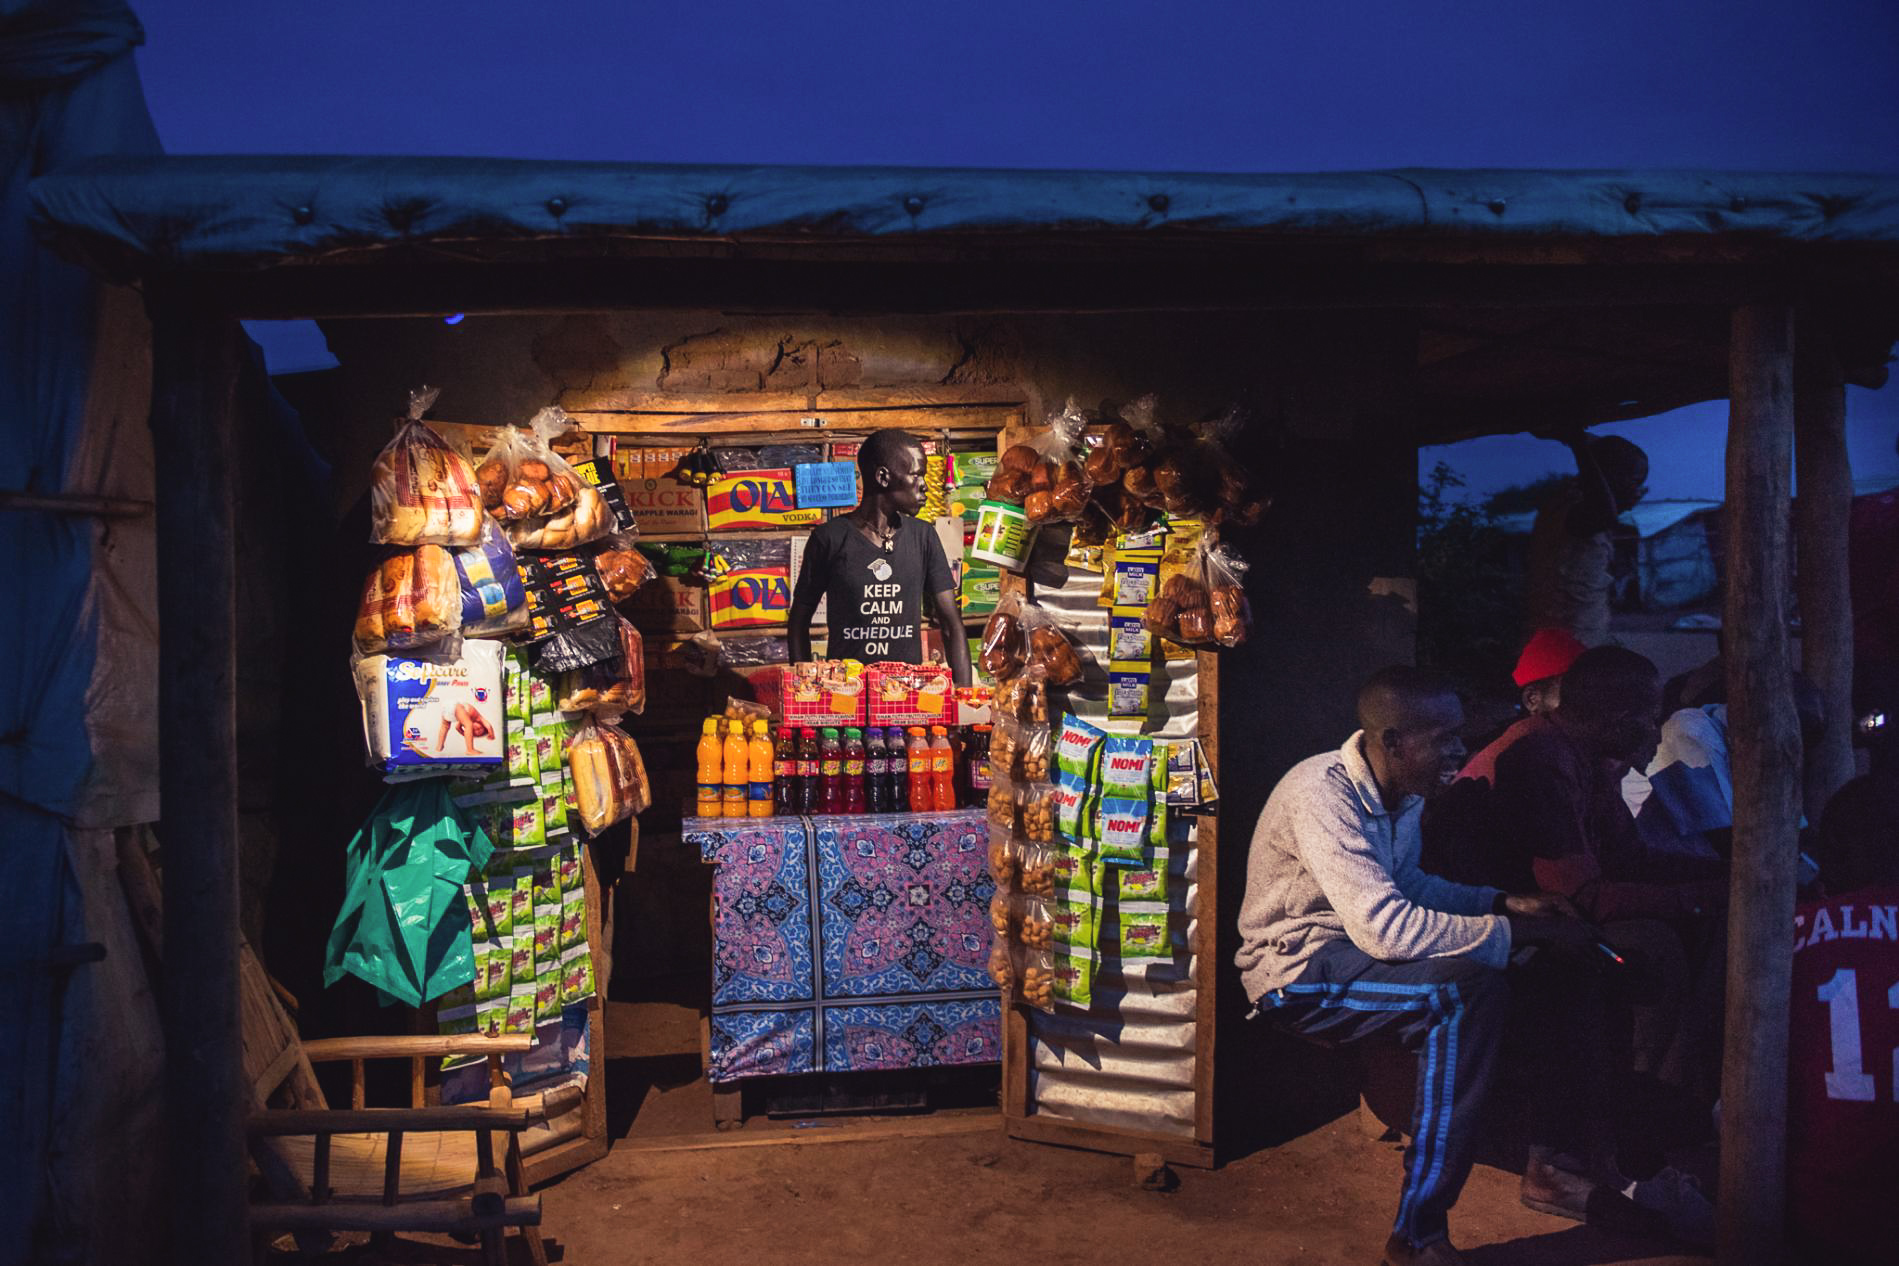 Uganda's Bidibidi refugee settlement is fast growing, full of life, and formalizing into a livable and lasting city for the quarter million people who call it home. IMAGE CREDIT: National Geographic / Nora Lorek